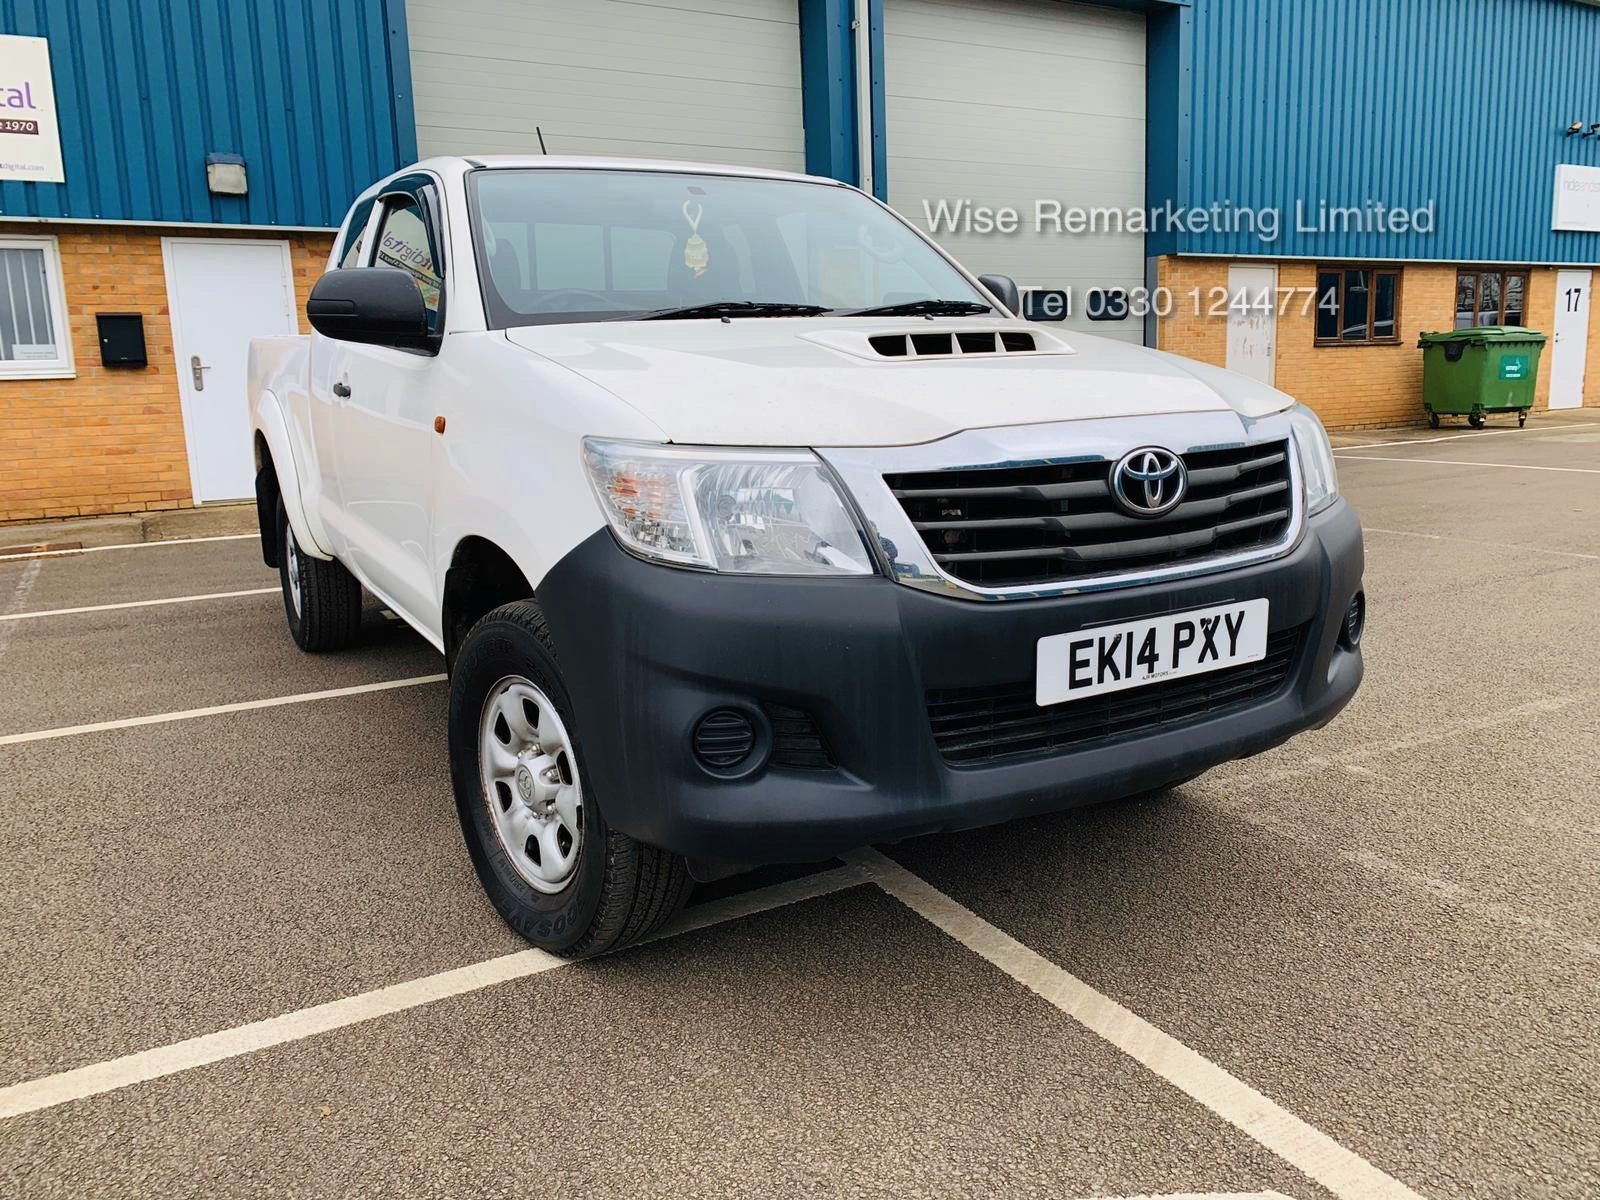 Reserve Met Toyota Hilux Active 2.5 D-4D 4X4 - 2014 14 Reg - Air Con - Tow Pack - SAVE 20% NO VAT - Image 7 of 17